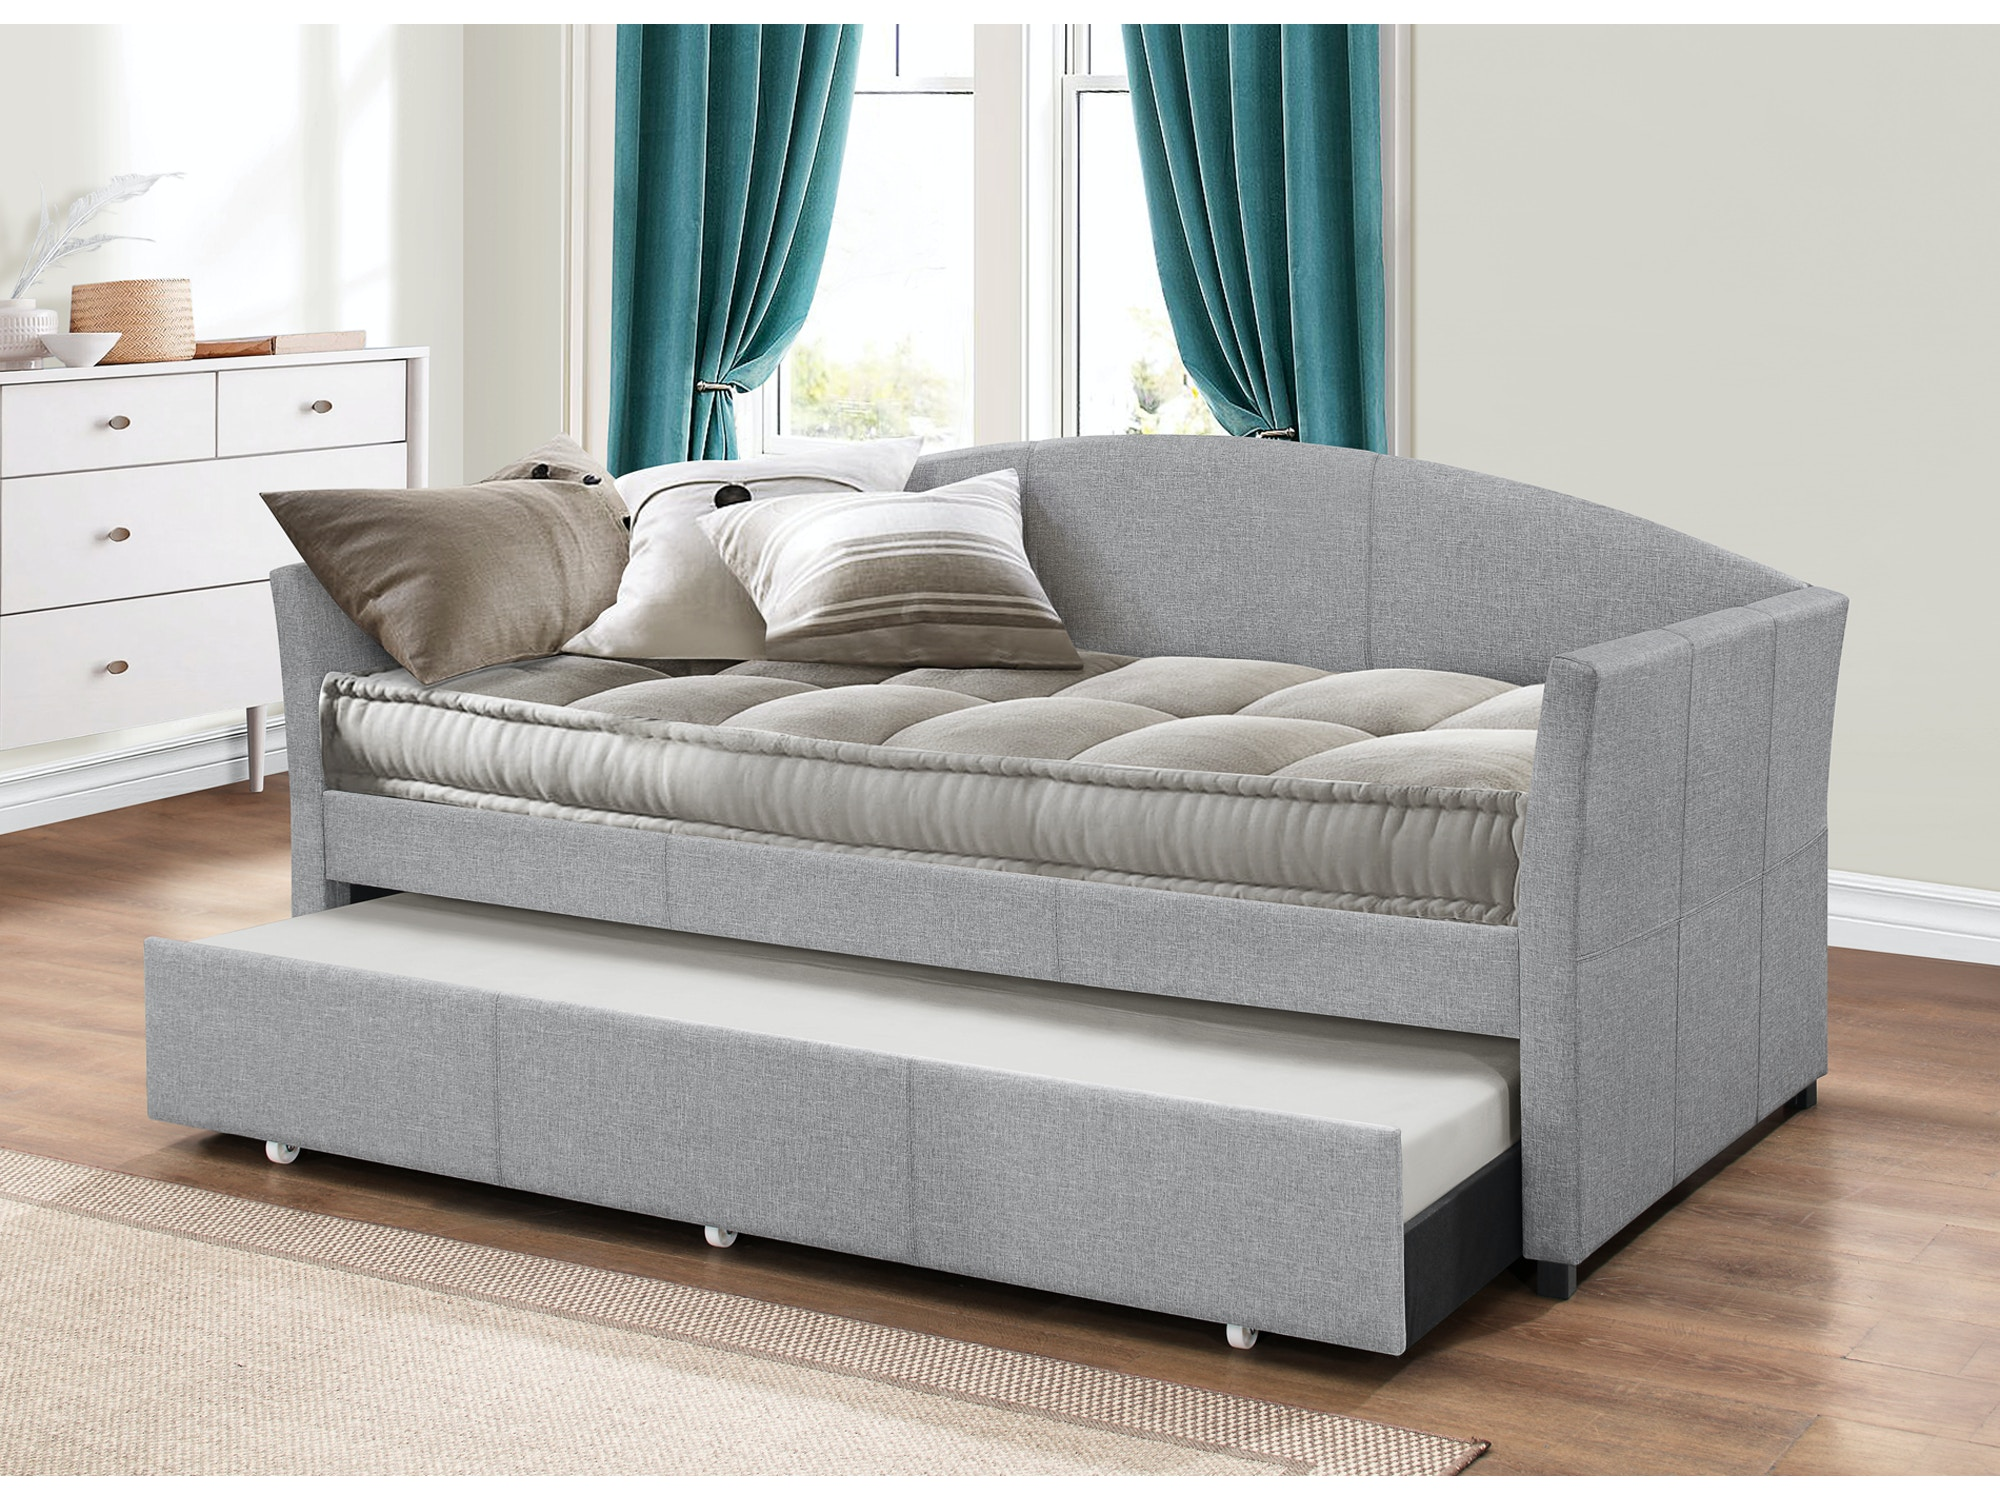 Westchester Daybed 540322